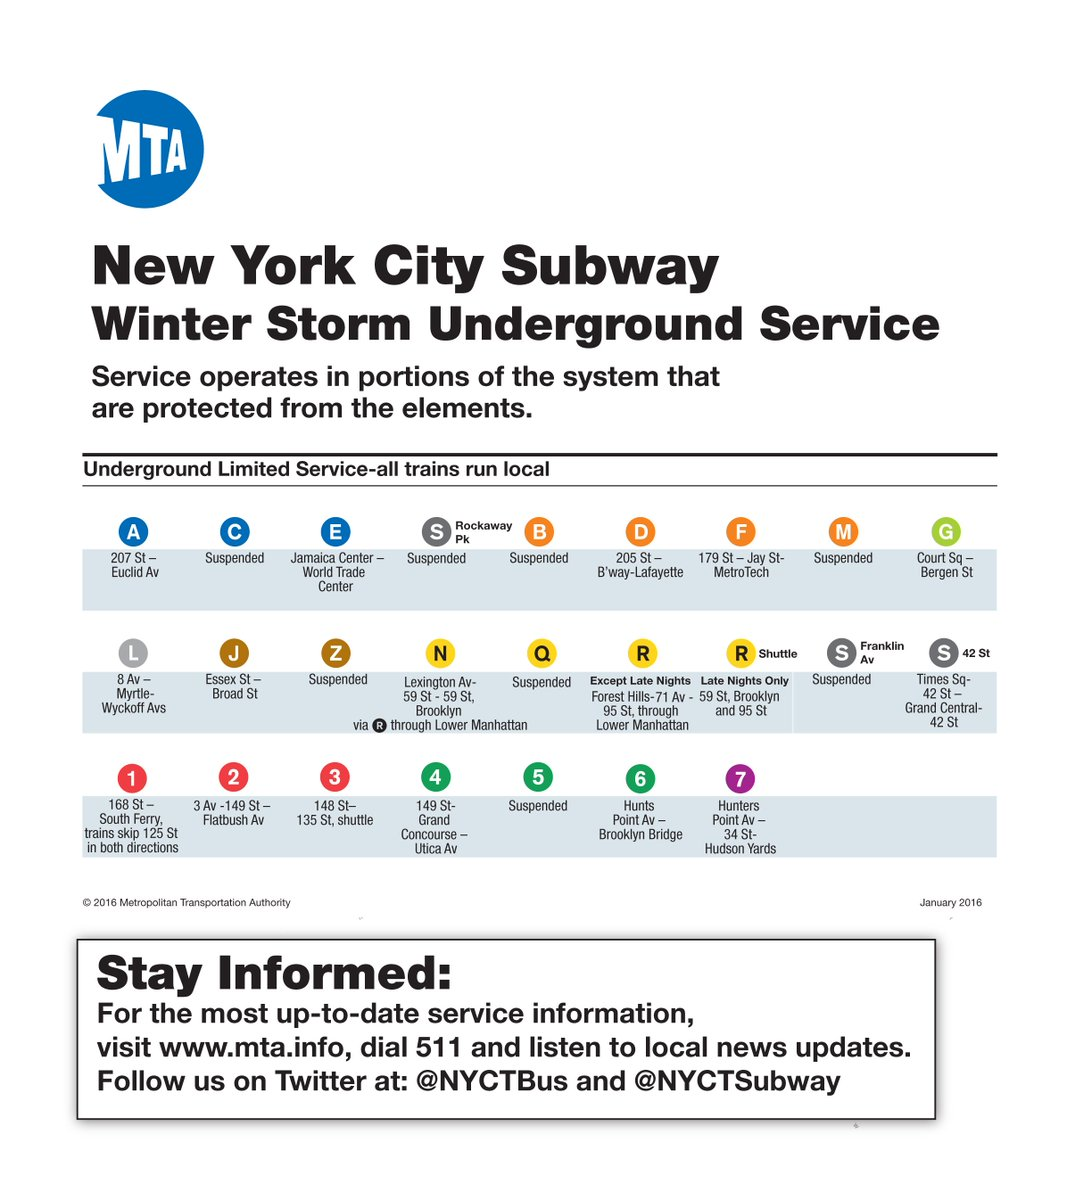 Winter Storm Service Guide gives a snapshot of underground subway service and terminals. https://t.co/CLker0qcWi